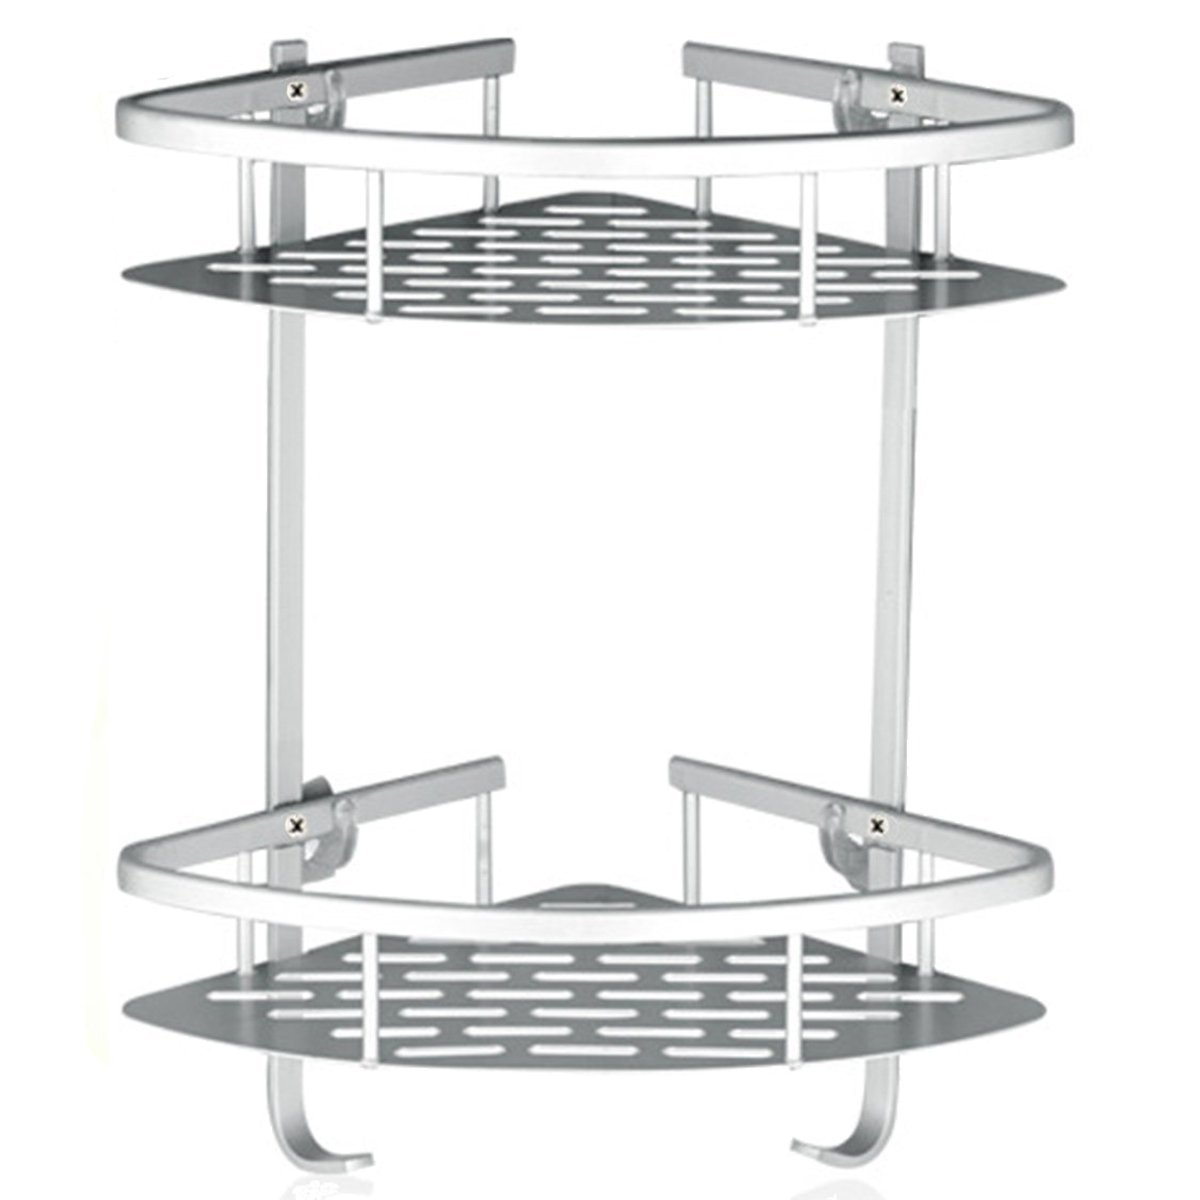 Lancher bathroom shelf basket